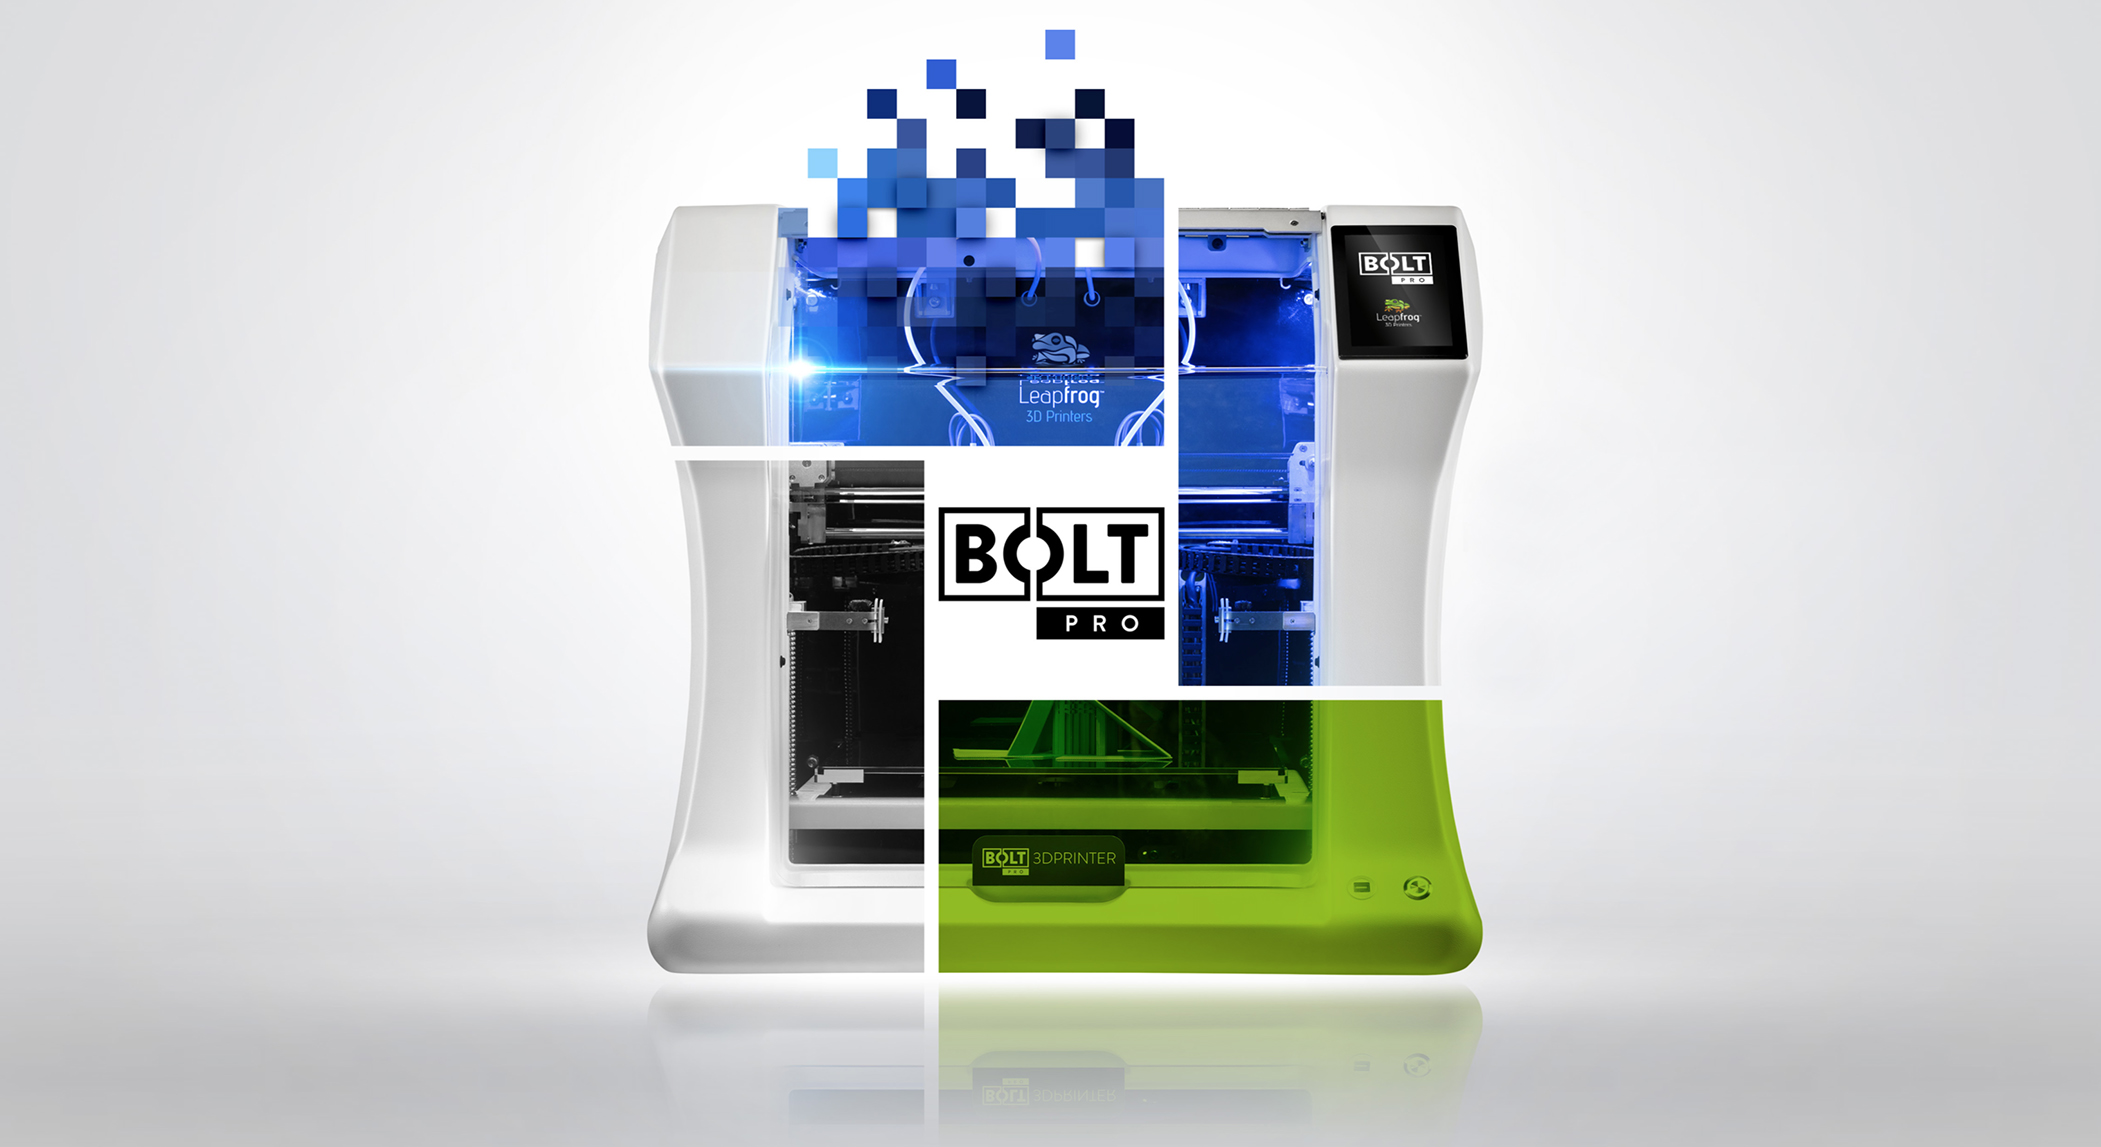 leapfrog-3d-printer-bolt-pro-featuredimage1